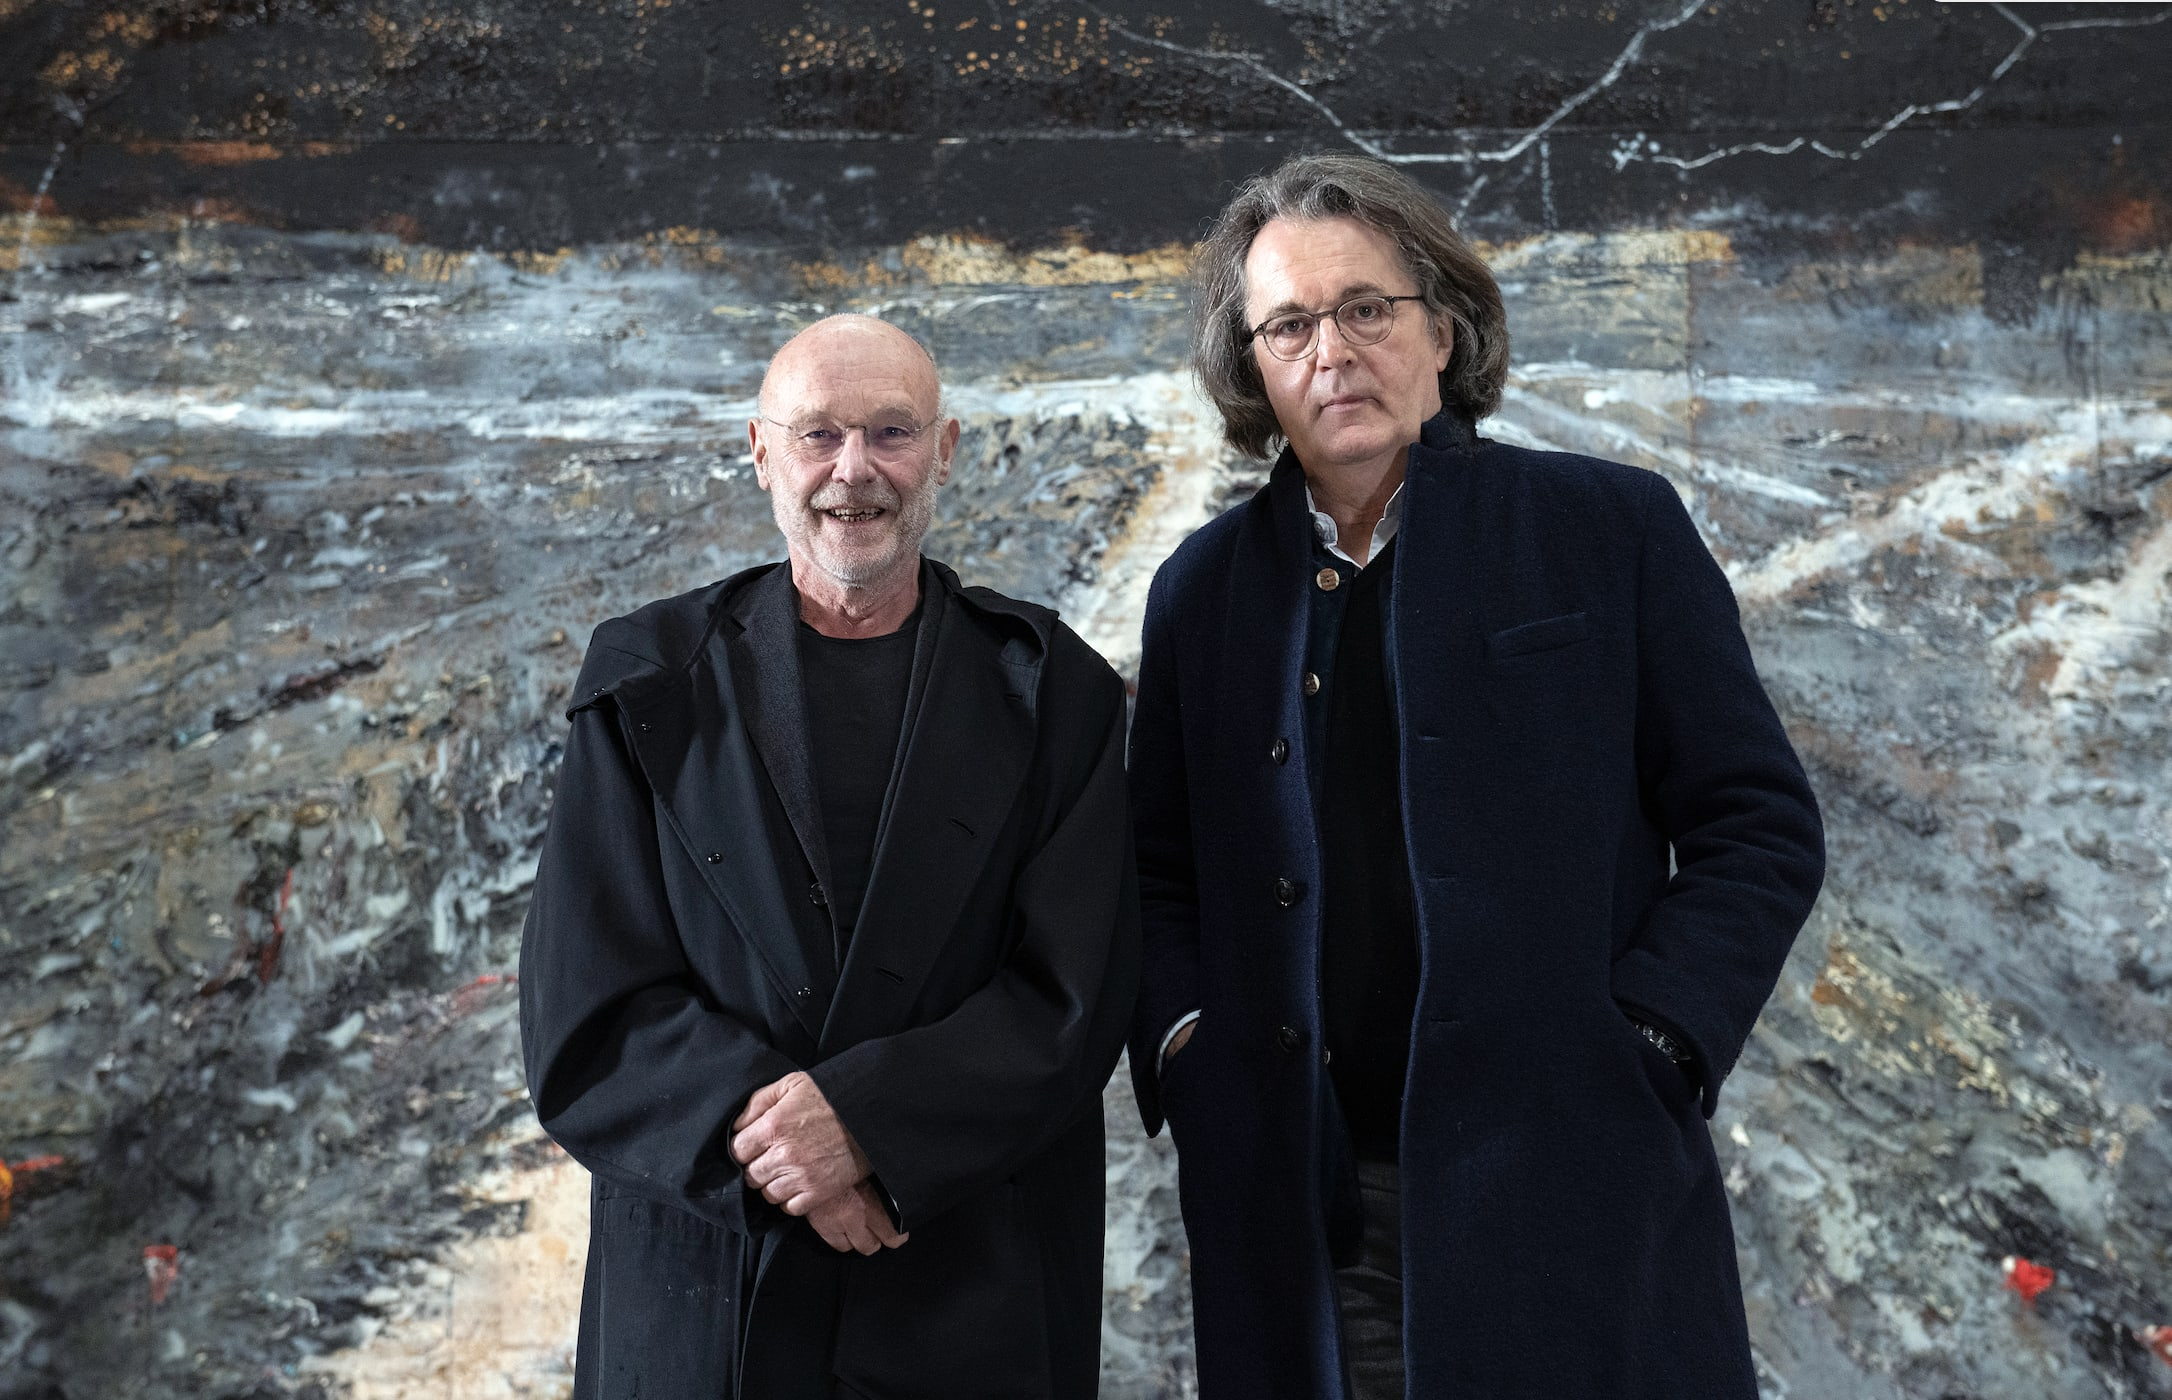 Anselm Kiefer and Pascal Dusapin create a permanent installation for the Pantheon